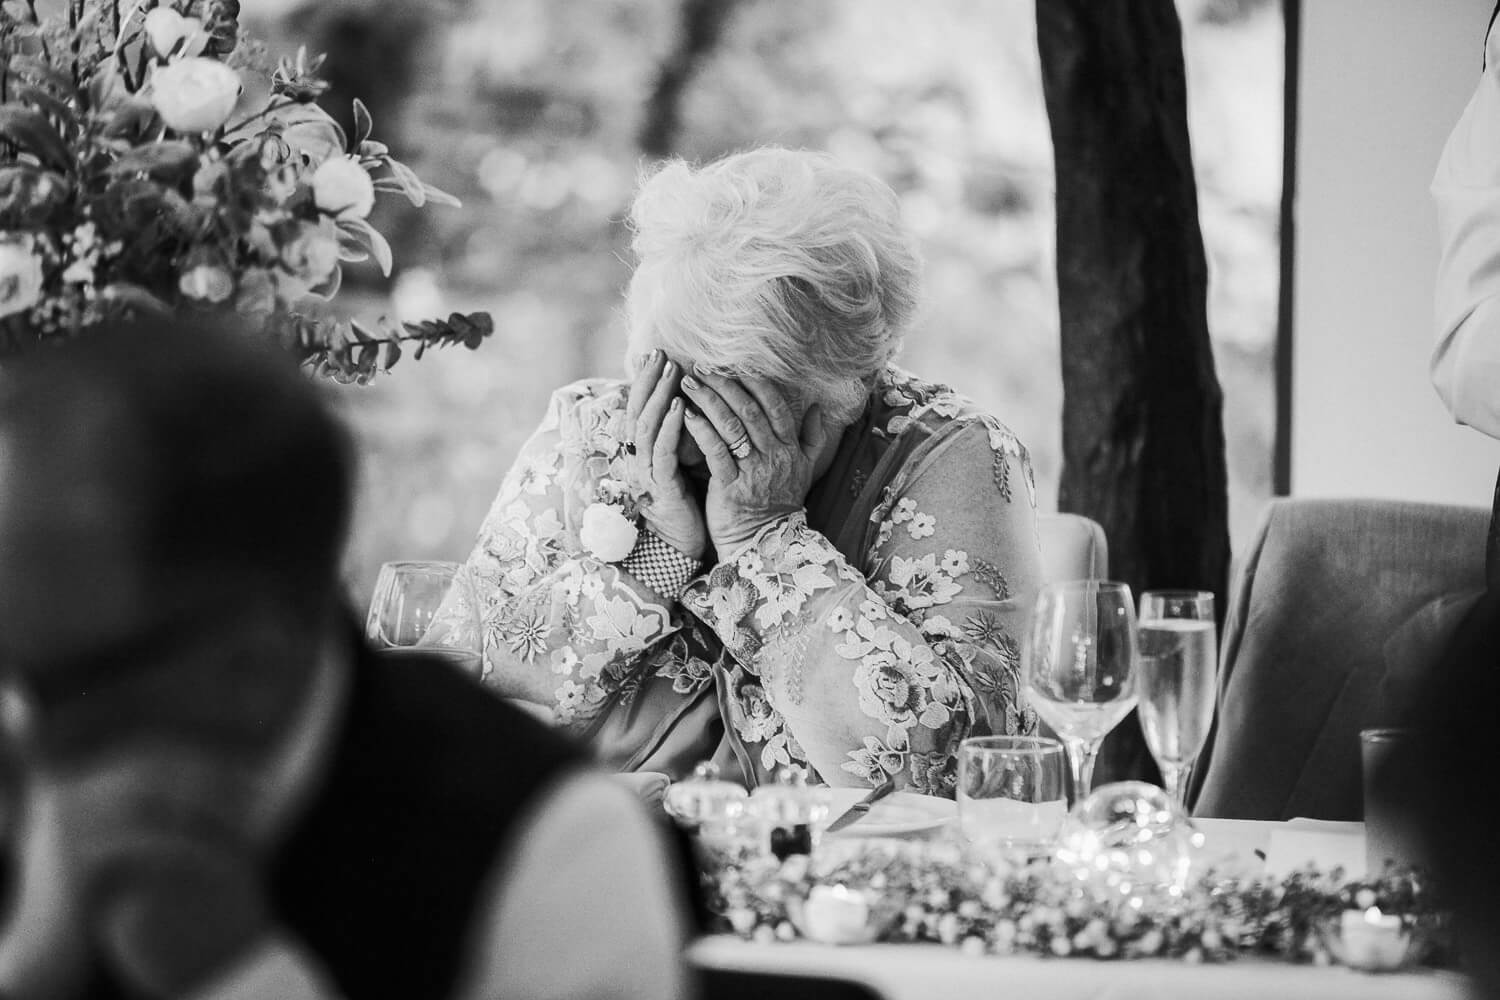 Woman hiding her face during speeches